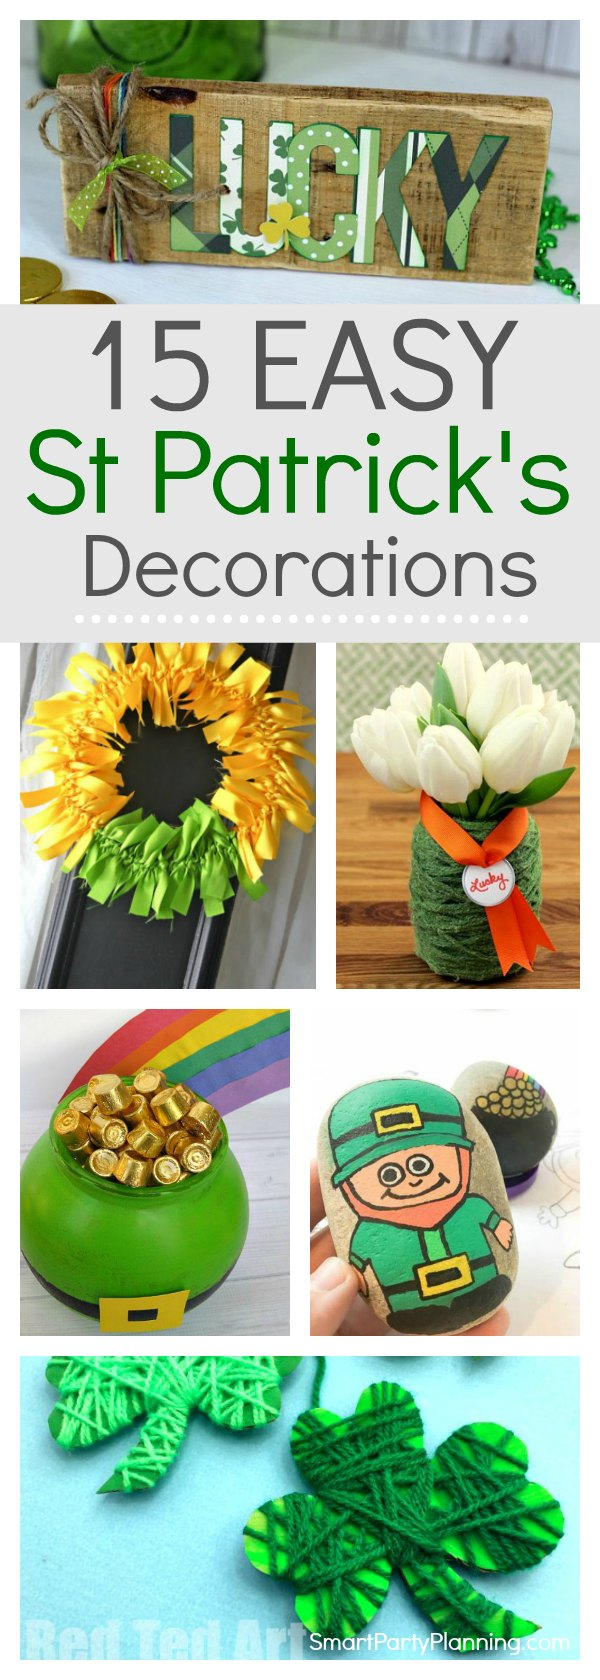 Learn how to make some easy St Patrick's day decorations.  These easy tutorials will help you craft and create some decorations that will brighten up your home for the occasion. Even if you are not feeling creative there will be something here that you can tackle. #StPatricksDayDecorations #Tutorials #DIY #Howtomake